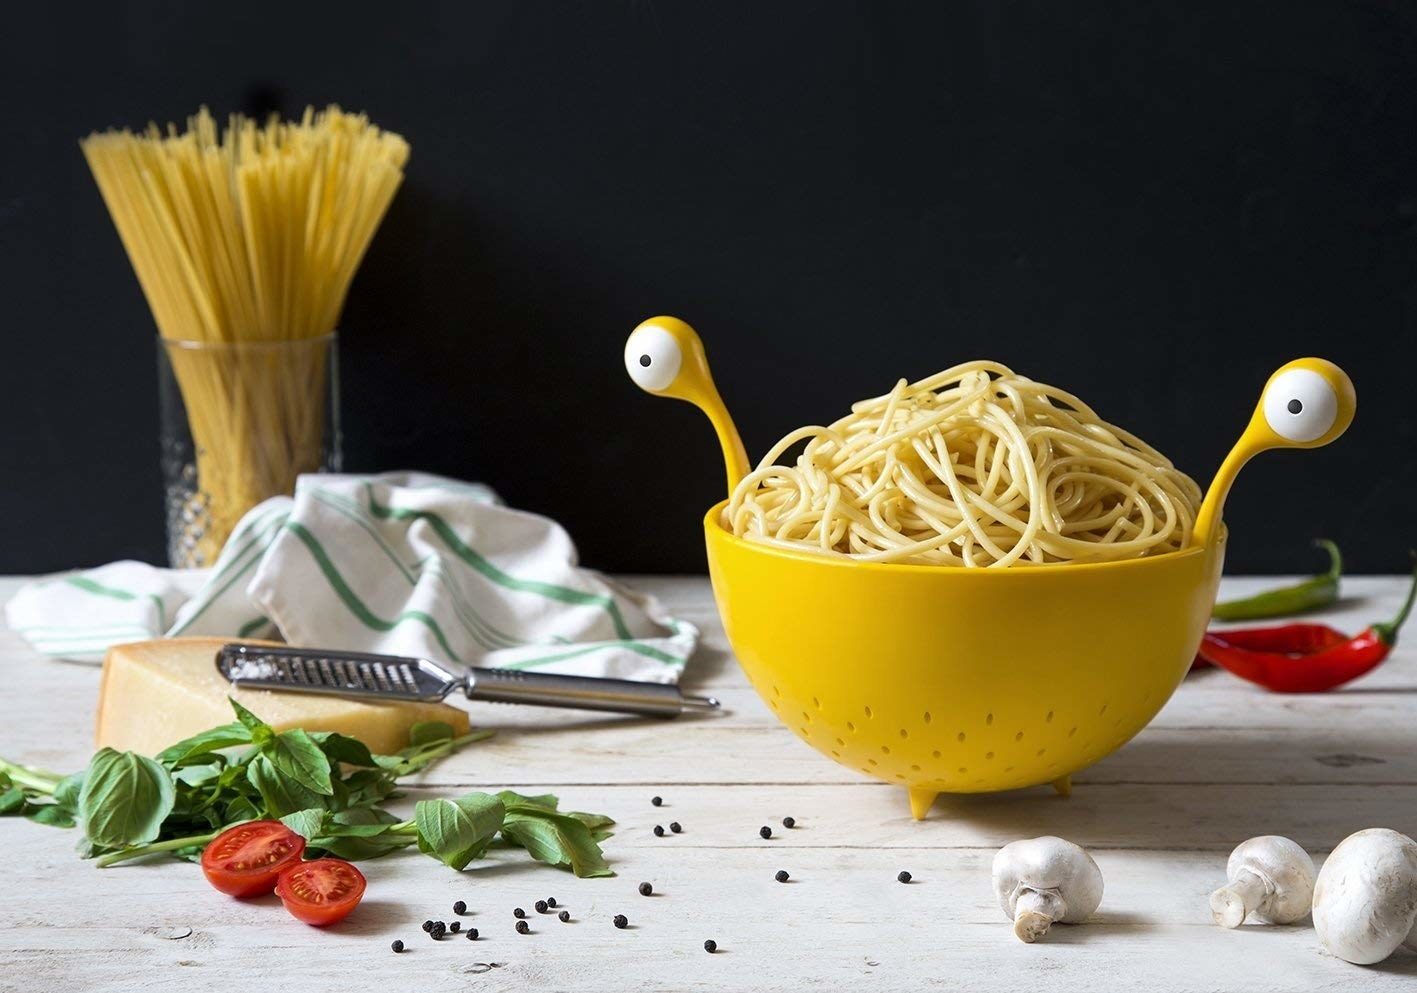 The yellow colander with handles that look like alien eye stalks with beady eyes on the ends